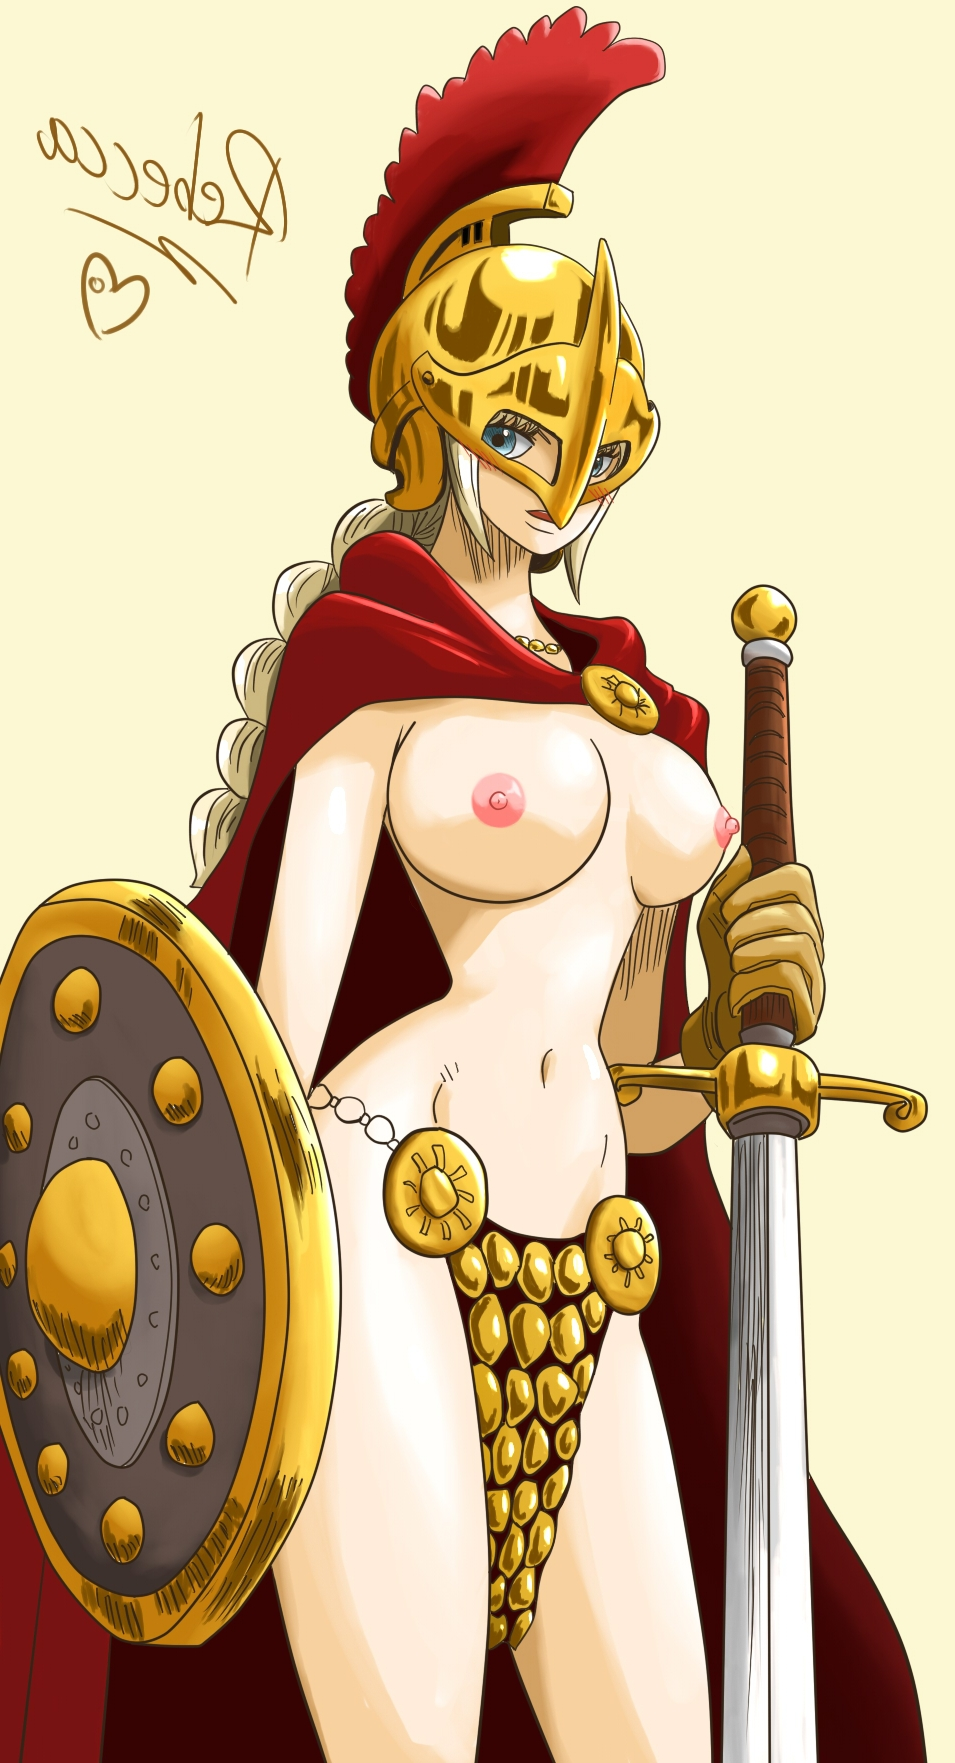 Toon sex pic ##0001301262305 armor blonde hair blue eyess breasts helmet highres large breasts nipples one piece rebecca (one piece) shield sword topless warrior weapon